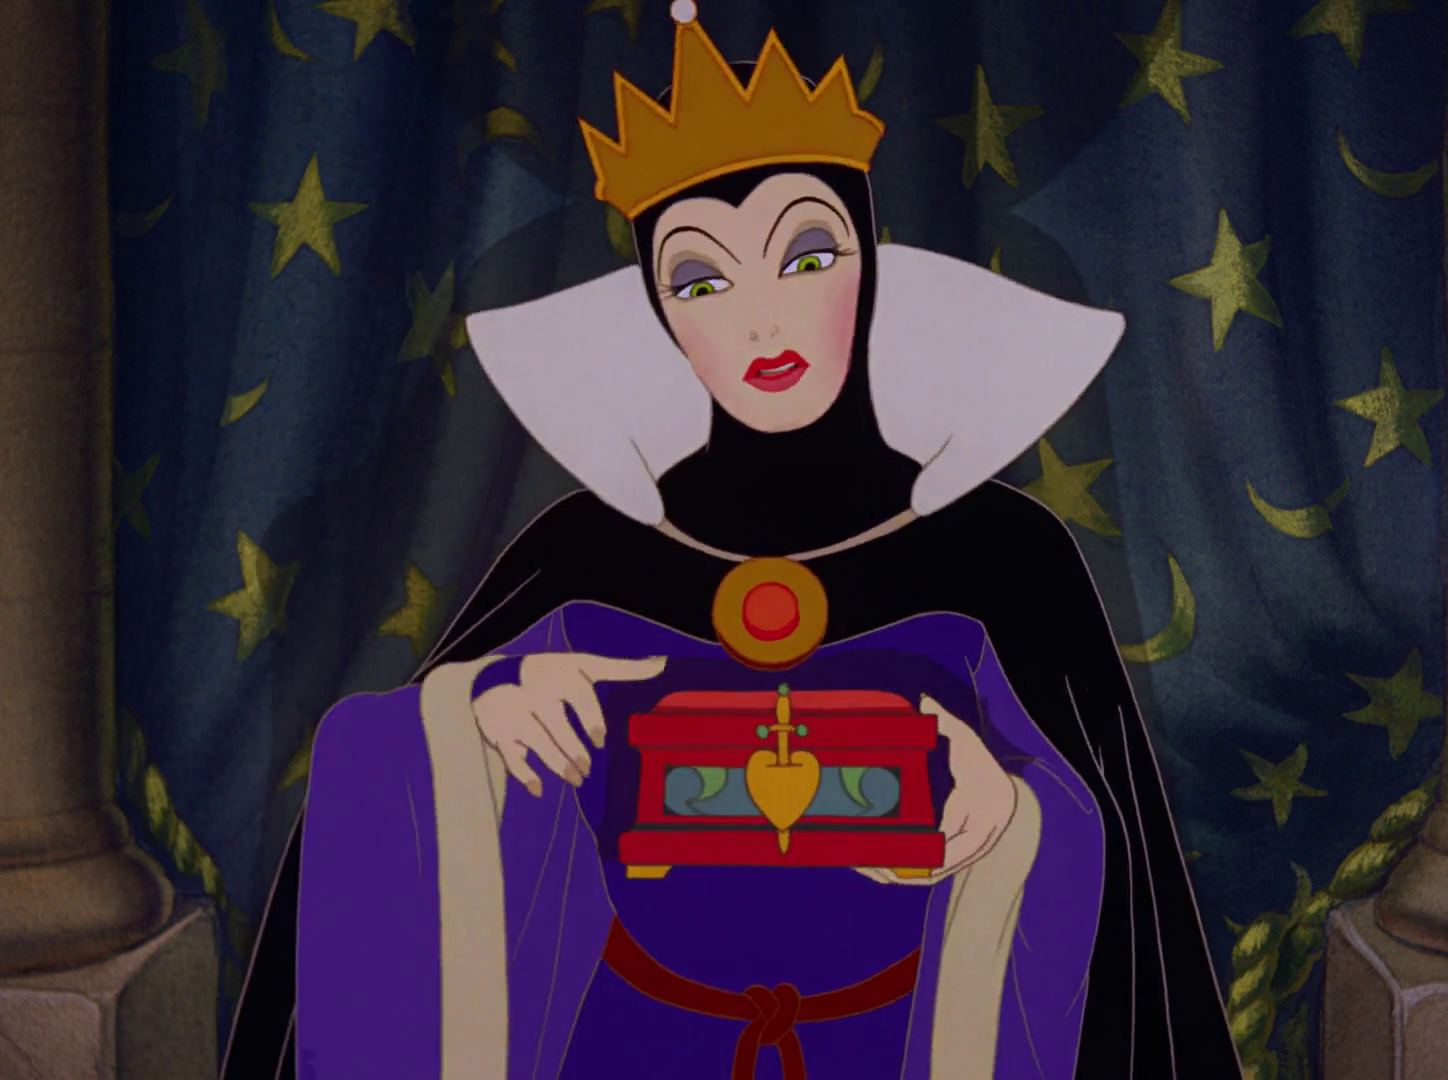 Image evil queen snow white and the seven dwarfs 1937 - Evil queen disney ...